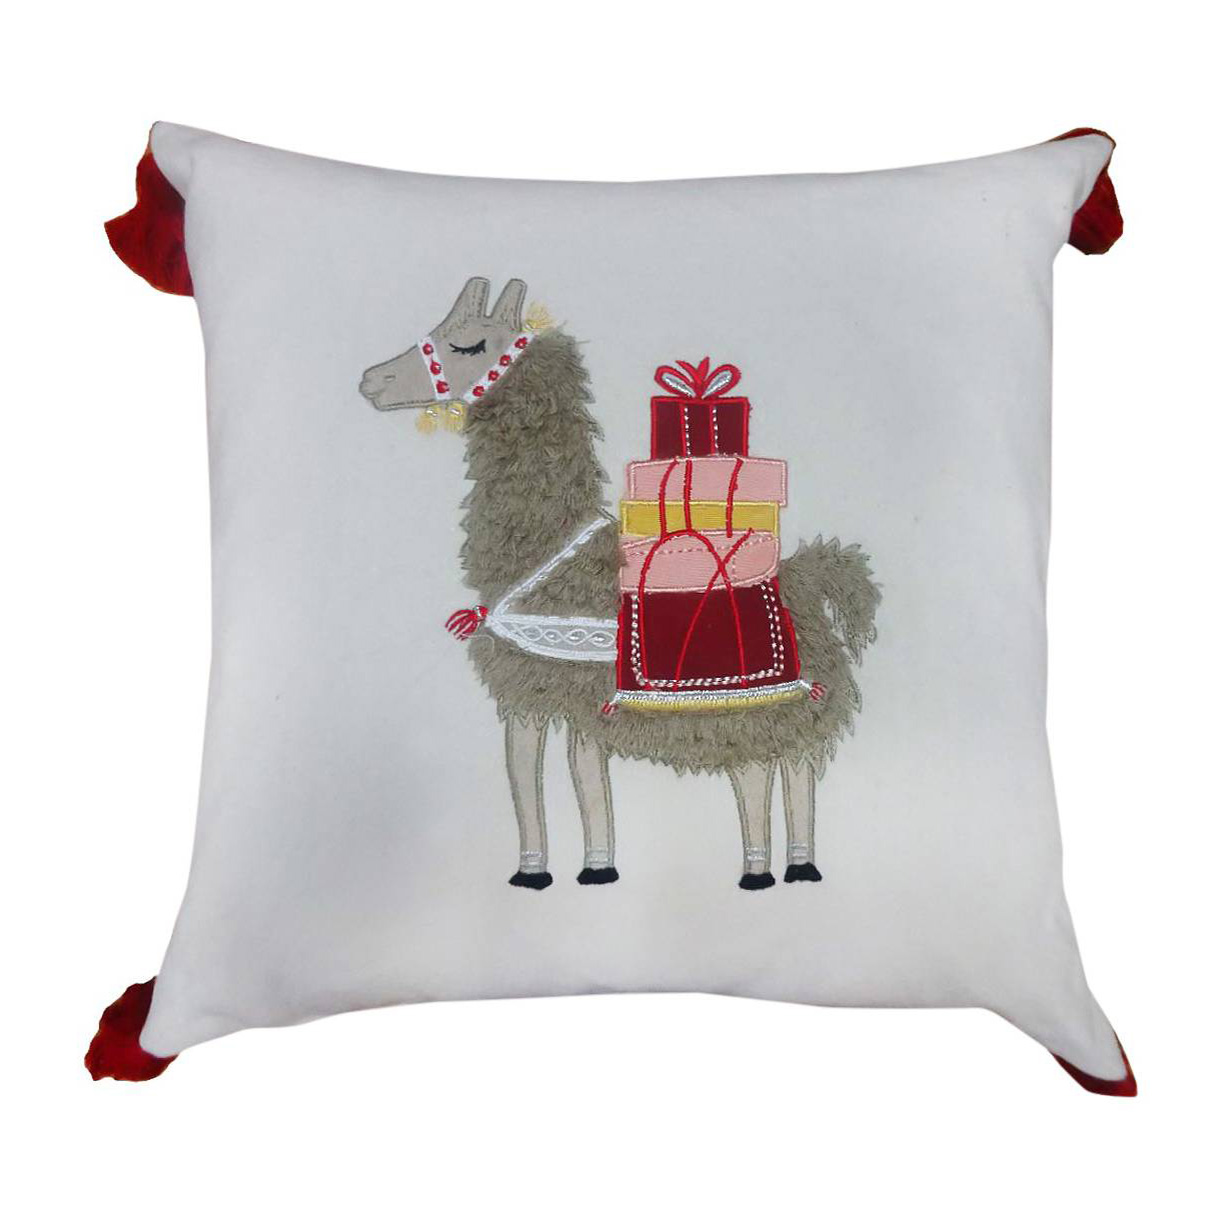 threshold embroidered llama throw pillow 1999